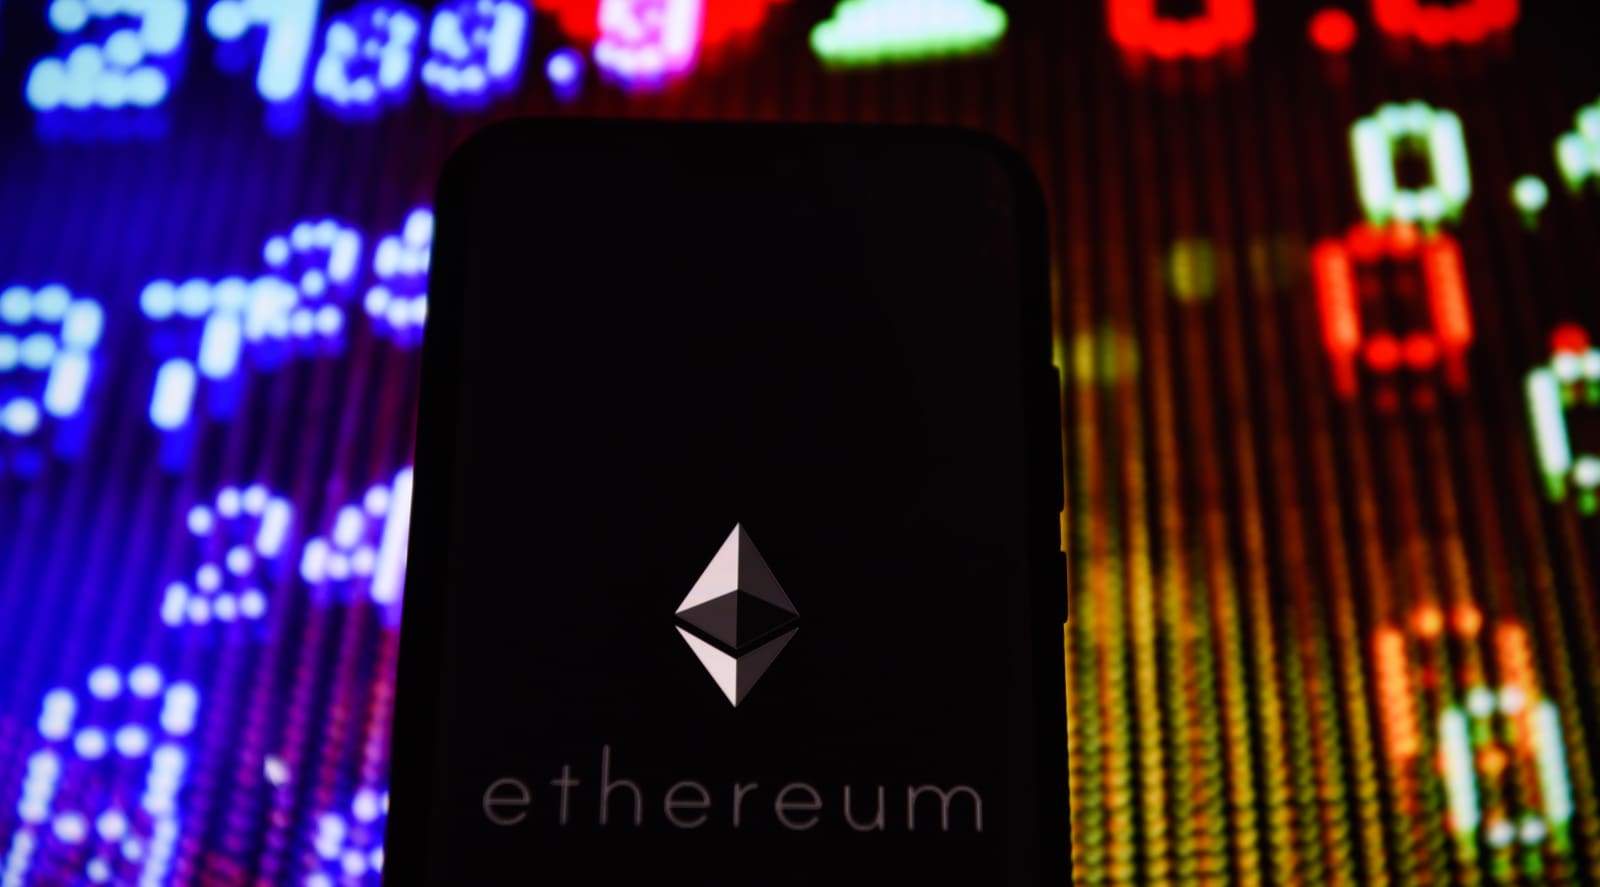 Crypto currency Ethereum  logo is seen on an android mobile